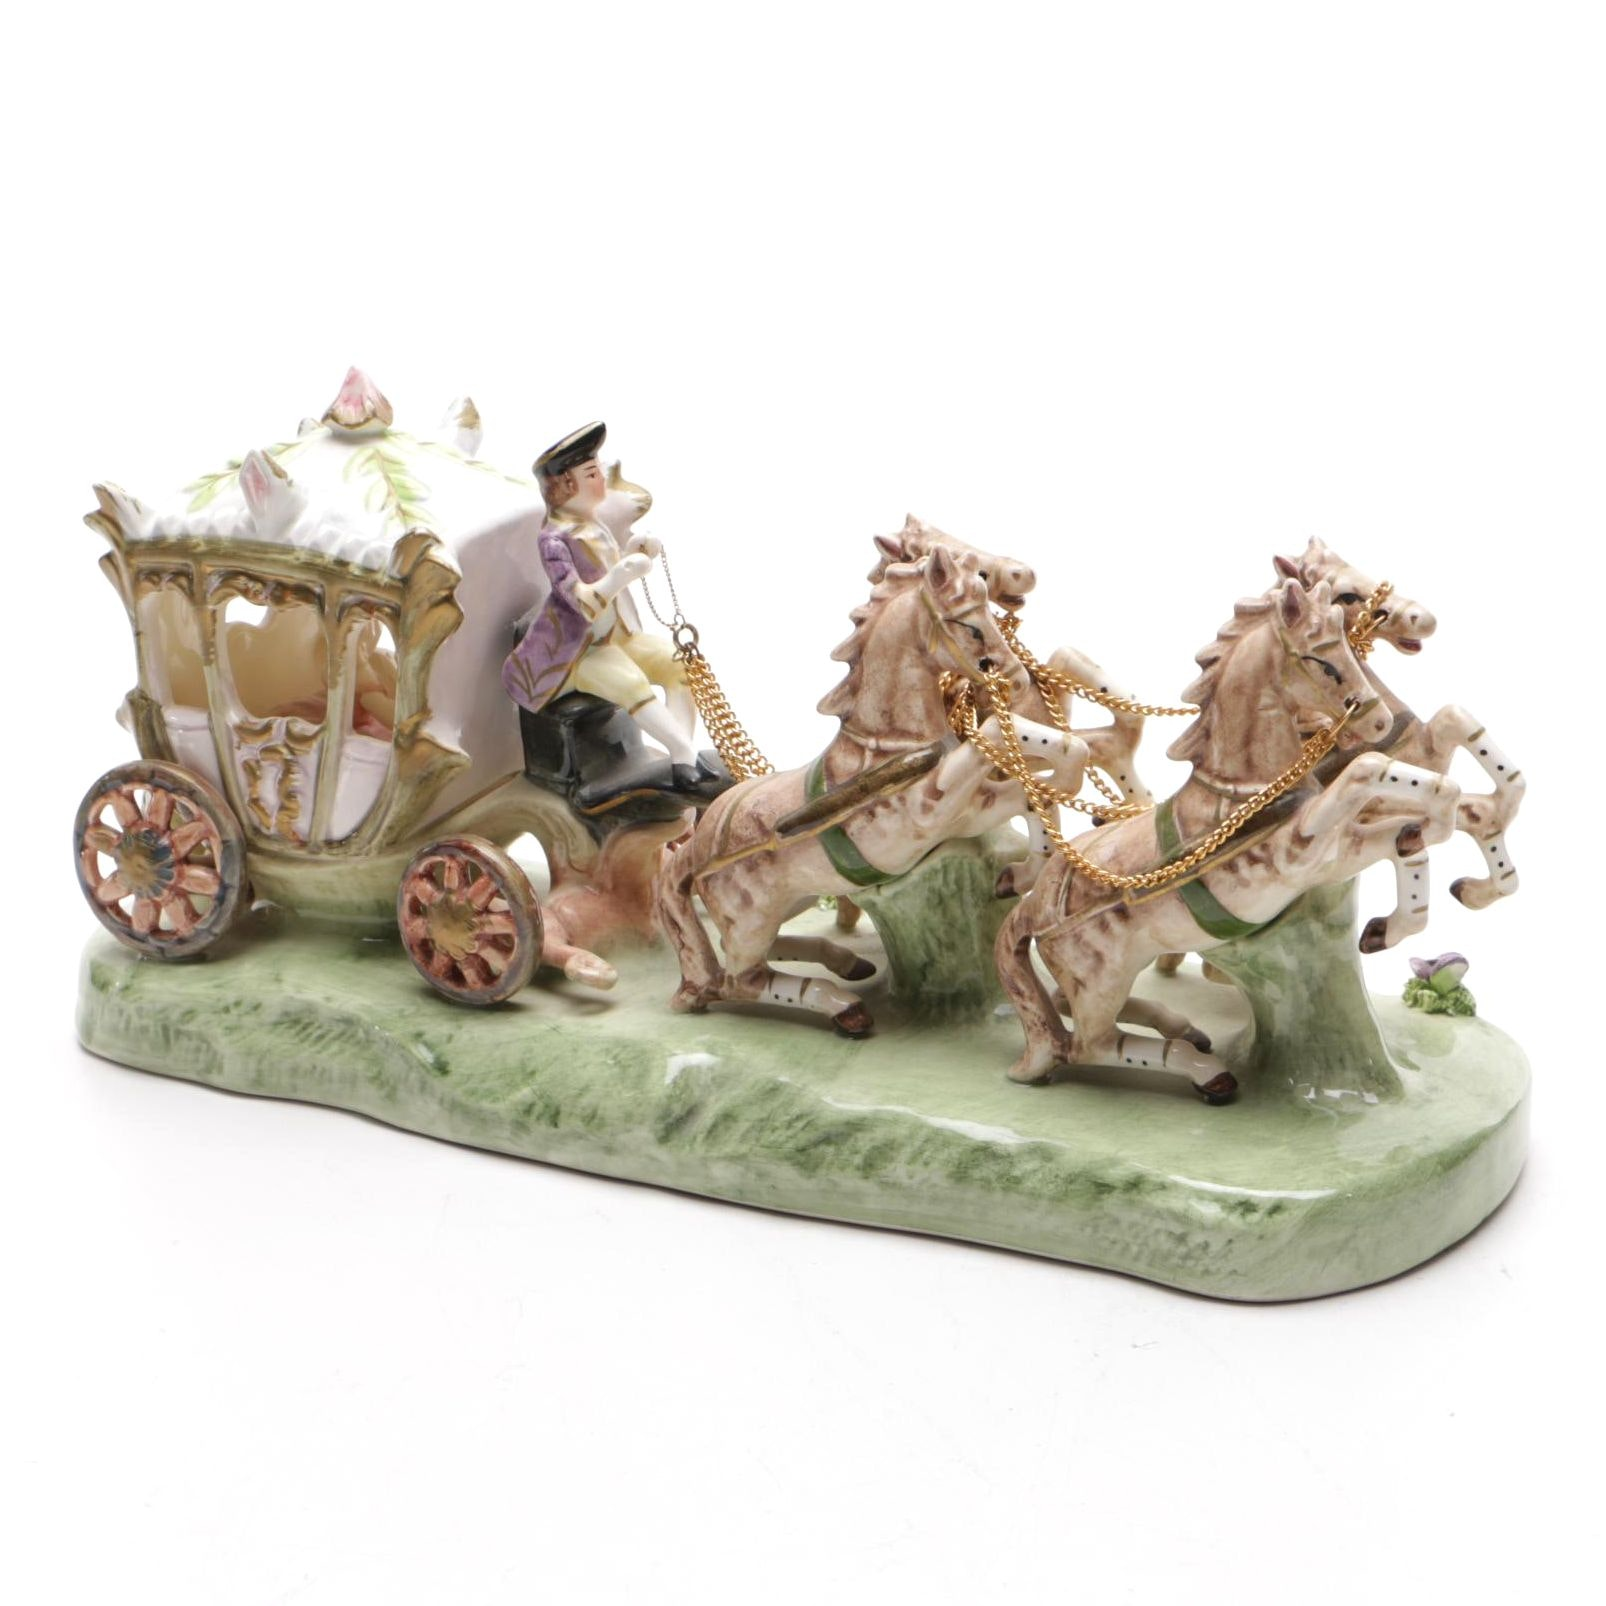 Cinderella and Carriage Figurine by Capodimonte